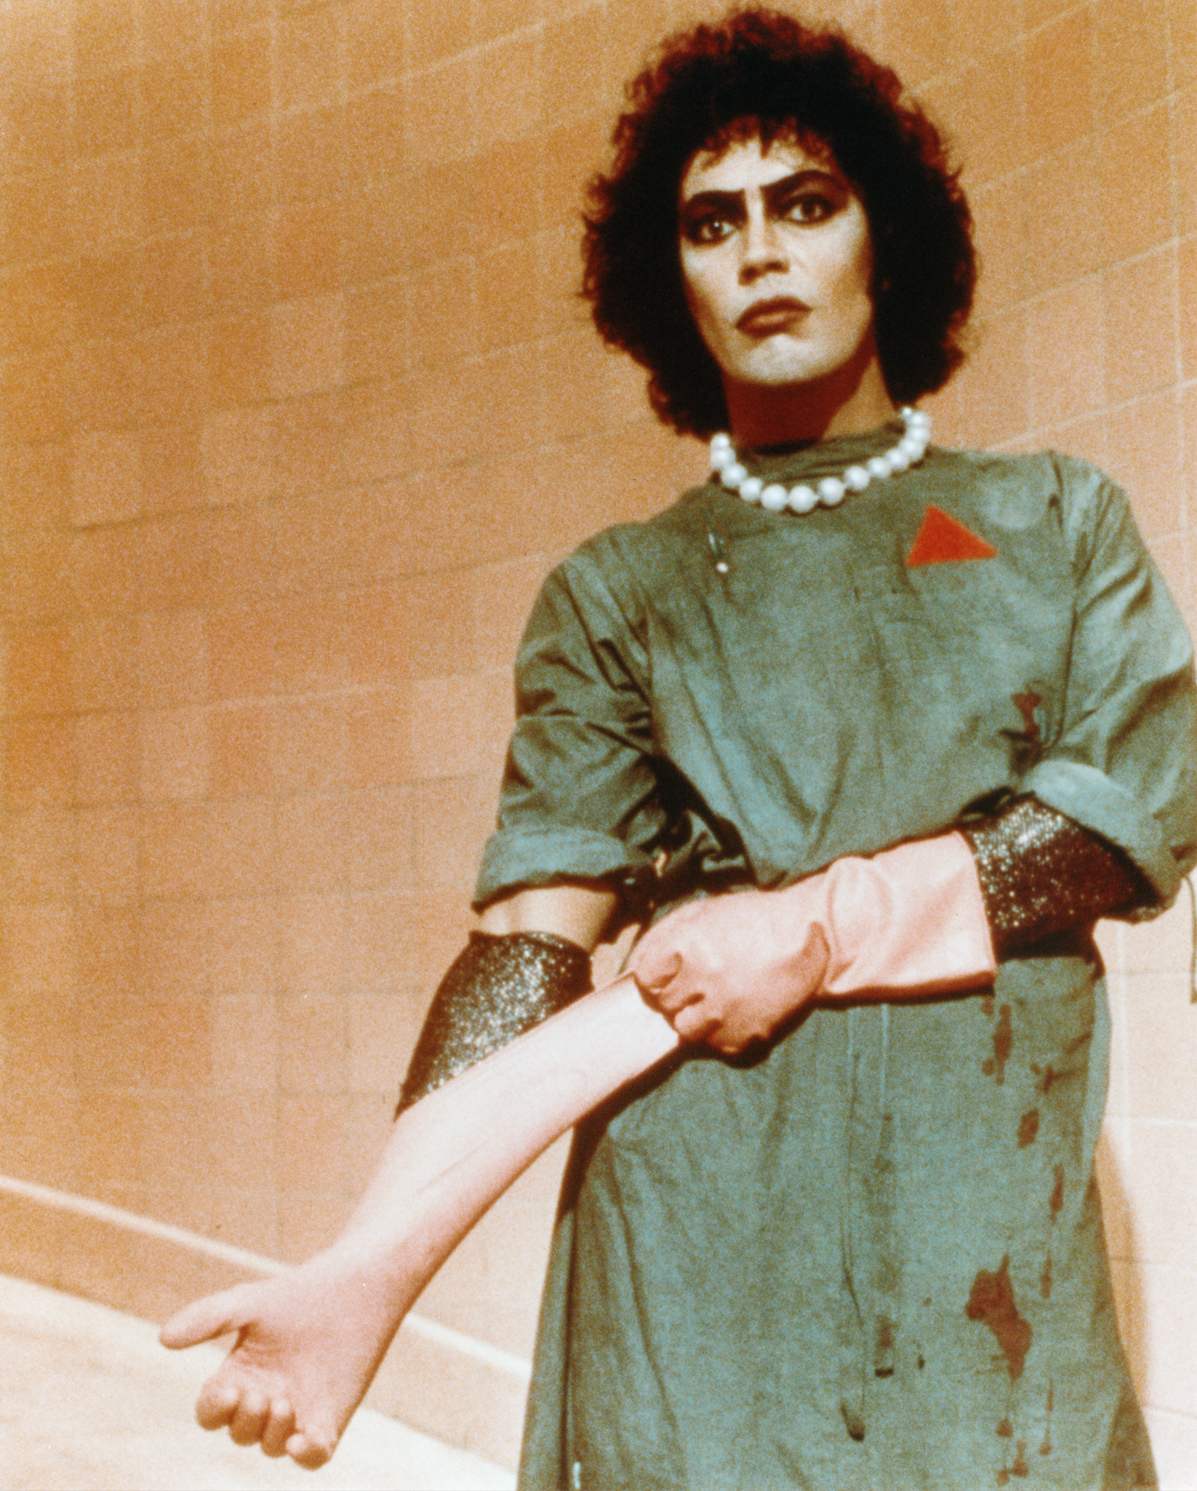 ROCKY HORROR PICTURE SHOW FOREVER photo 7